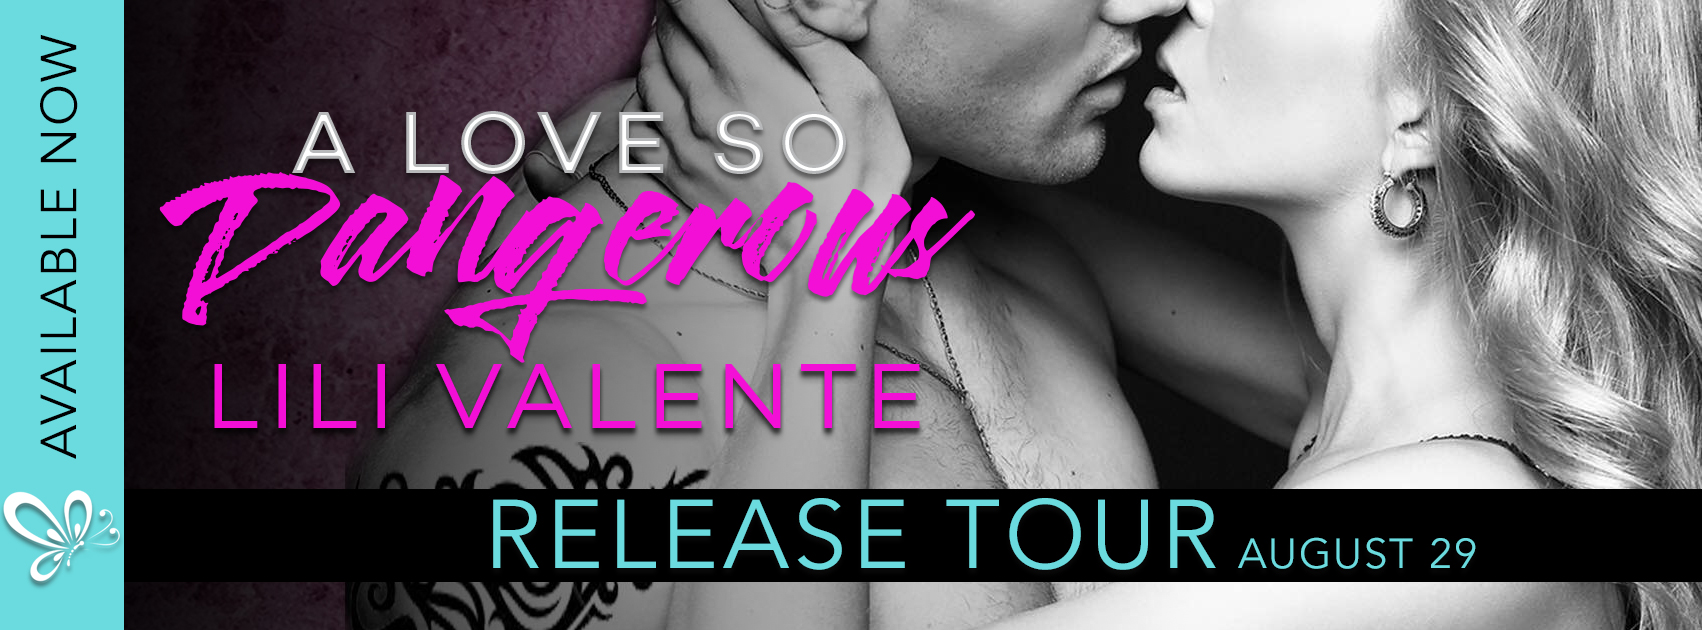 A Love So Dangerous by Lili Valente #ReleaseDay #Review @lili_valente_ro